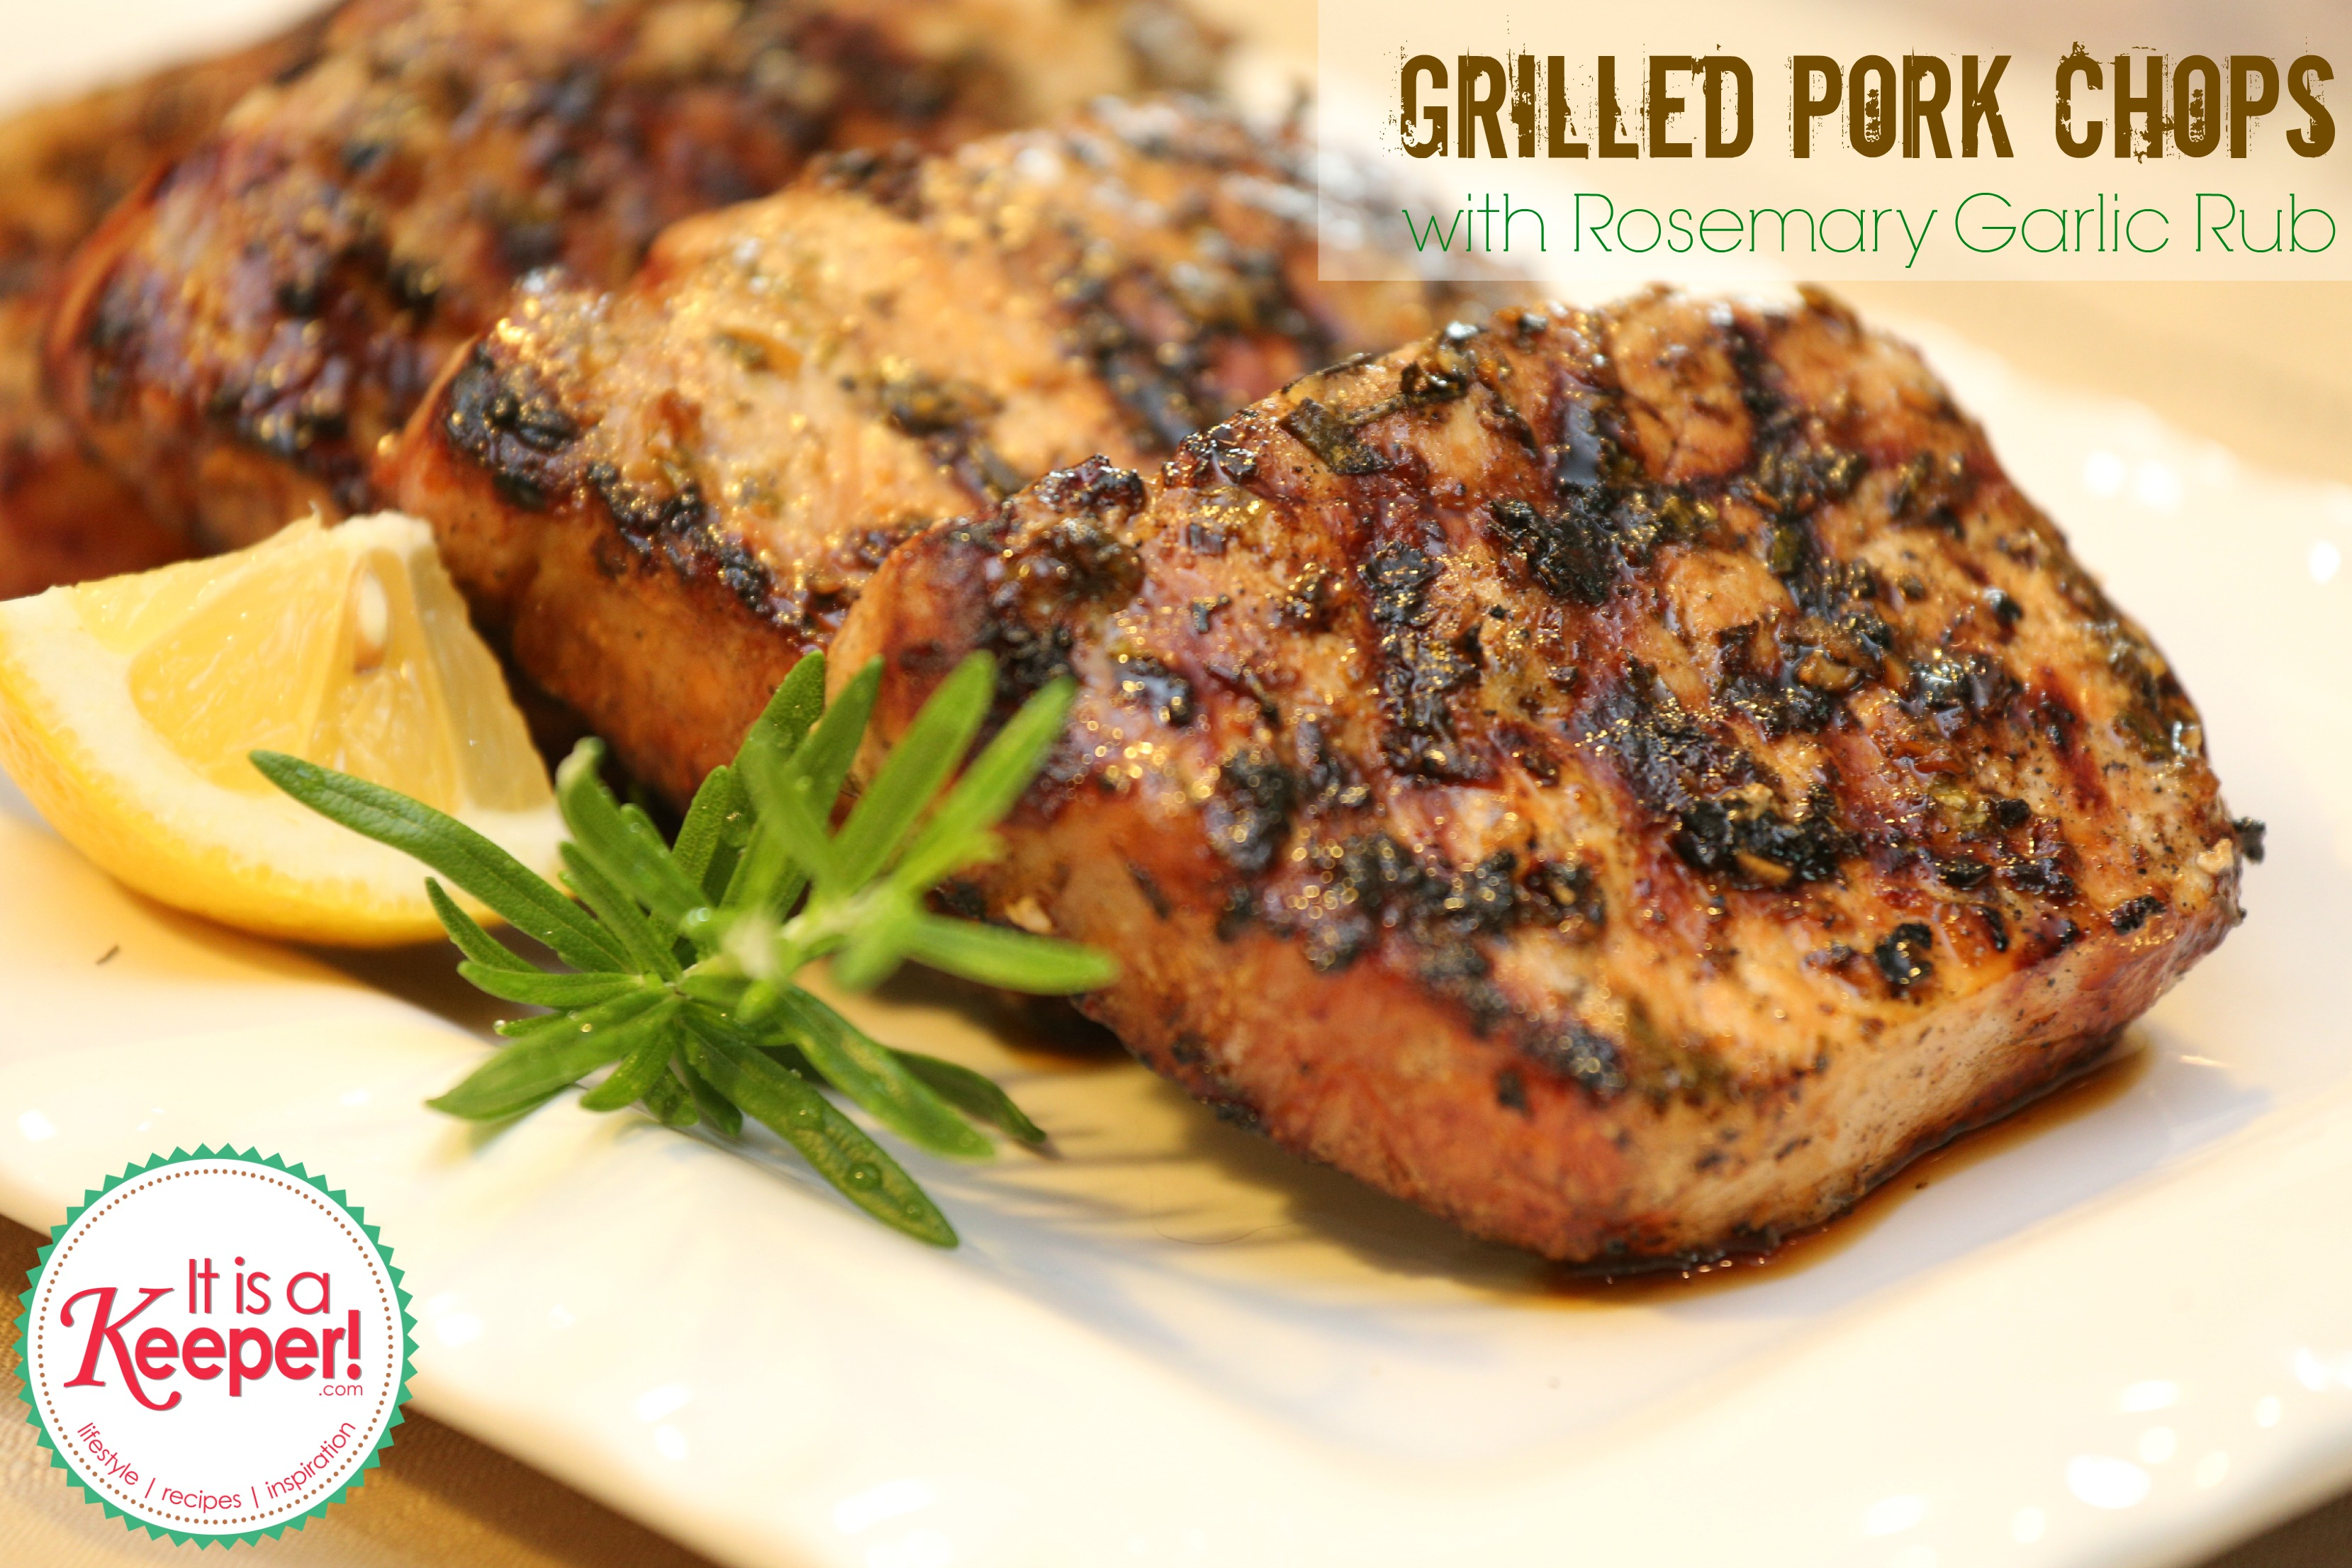 Grilled Pork Chops with Rosemary Garlic Rub - Lady Behind the Curtain